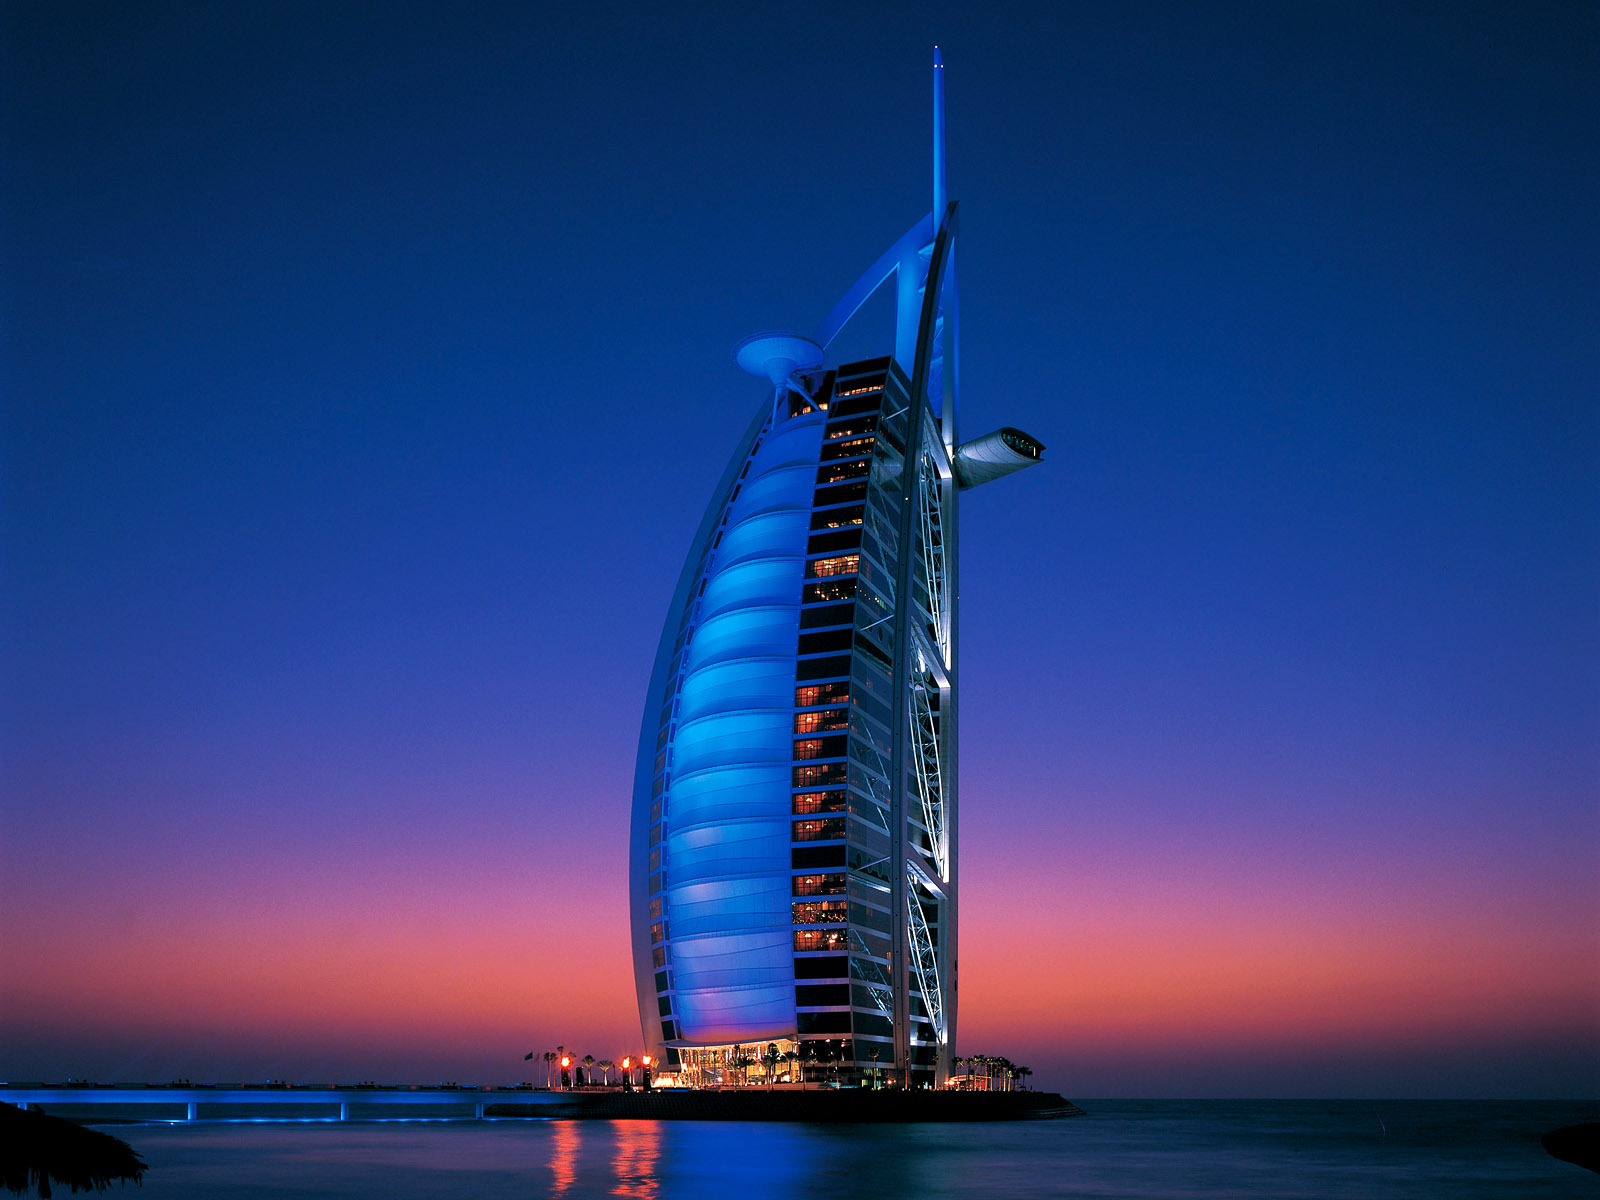 Burj al arab hotel dubai hd wallpaper for Hotel burj al arab